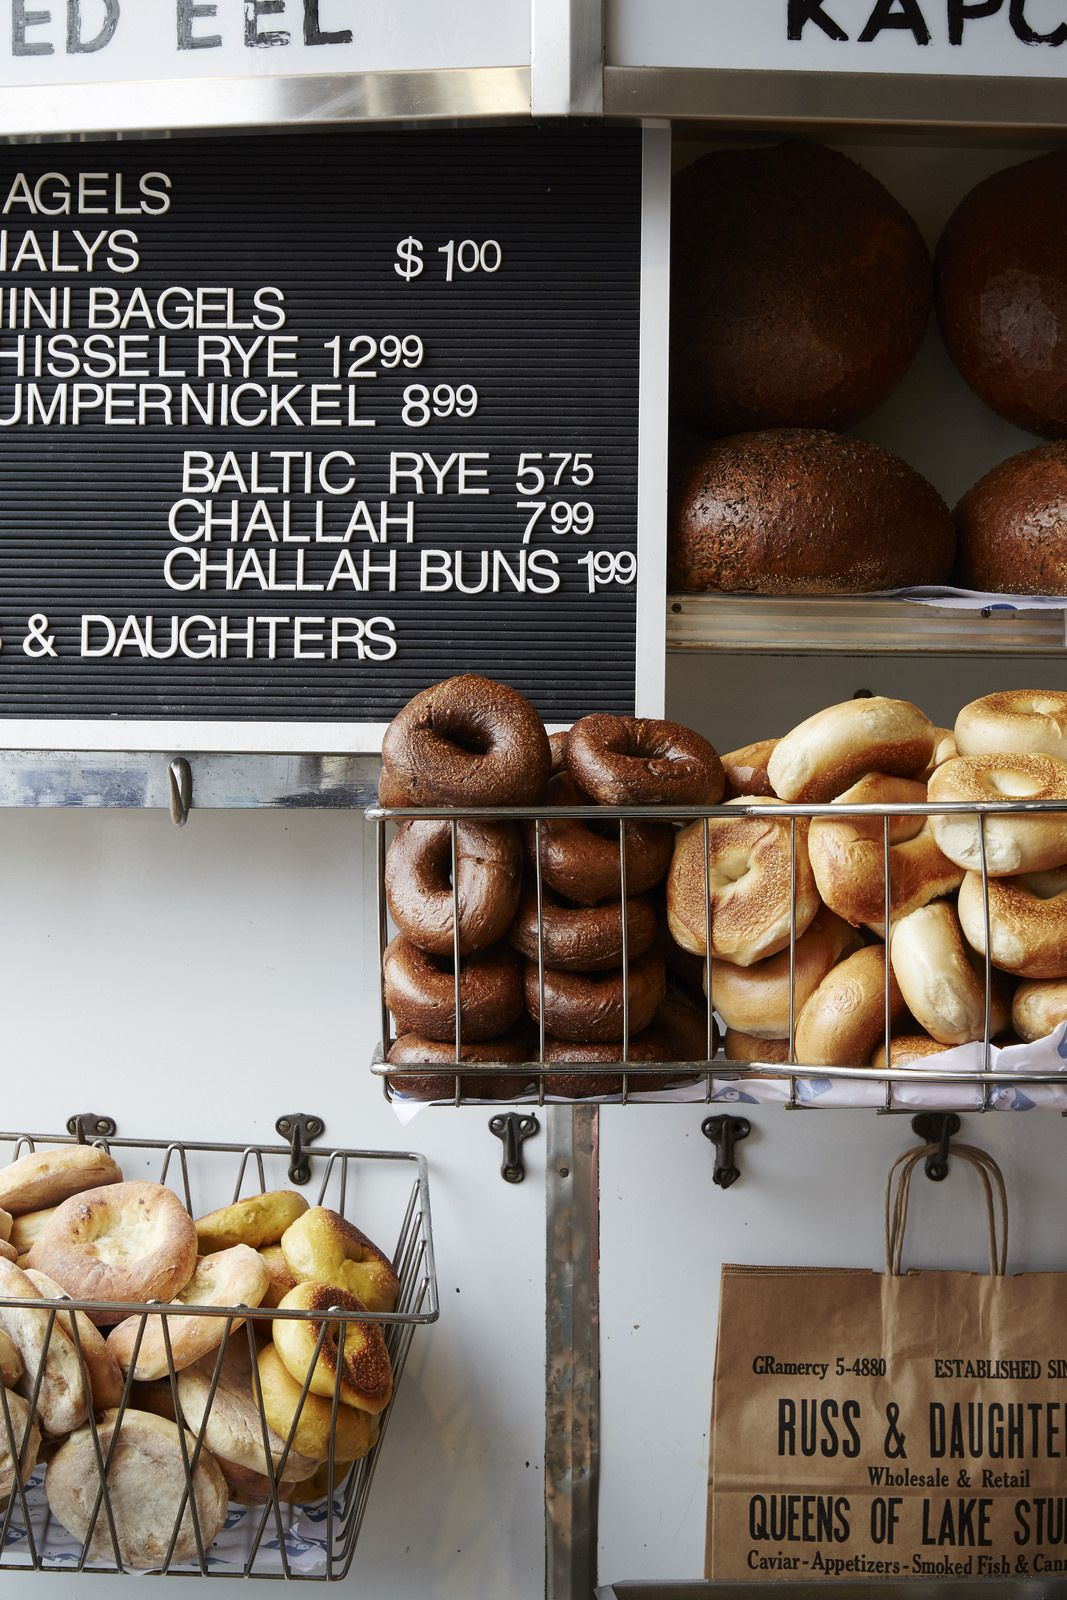 Bagels and buns at Russ & Daughters by Nicole Franzen